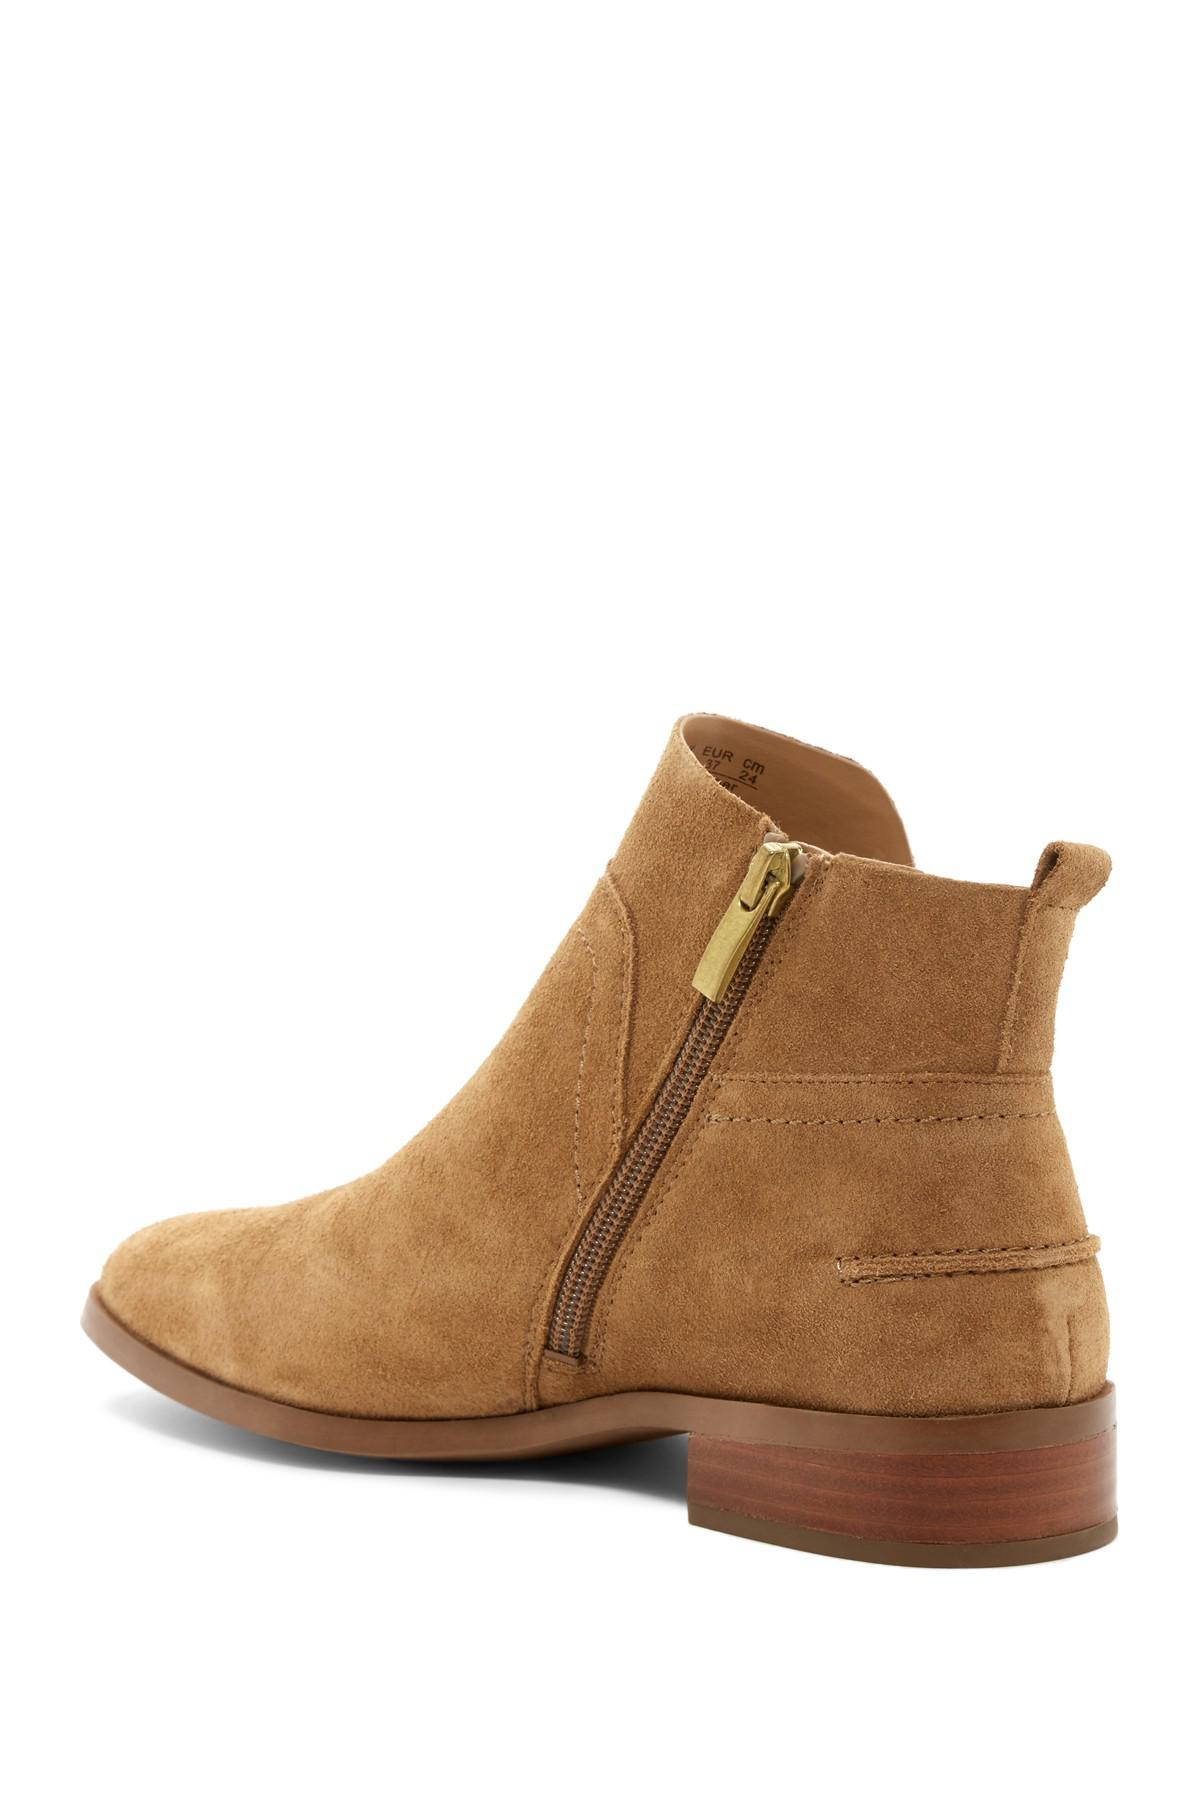 73d1f559f60 Lyst - Franco Sarto Ruby Post Button Boot in Brown